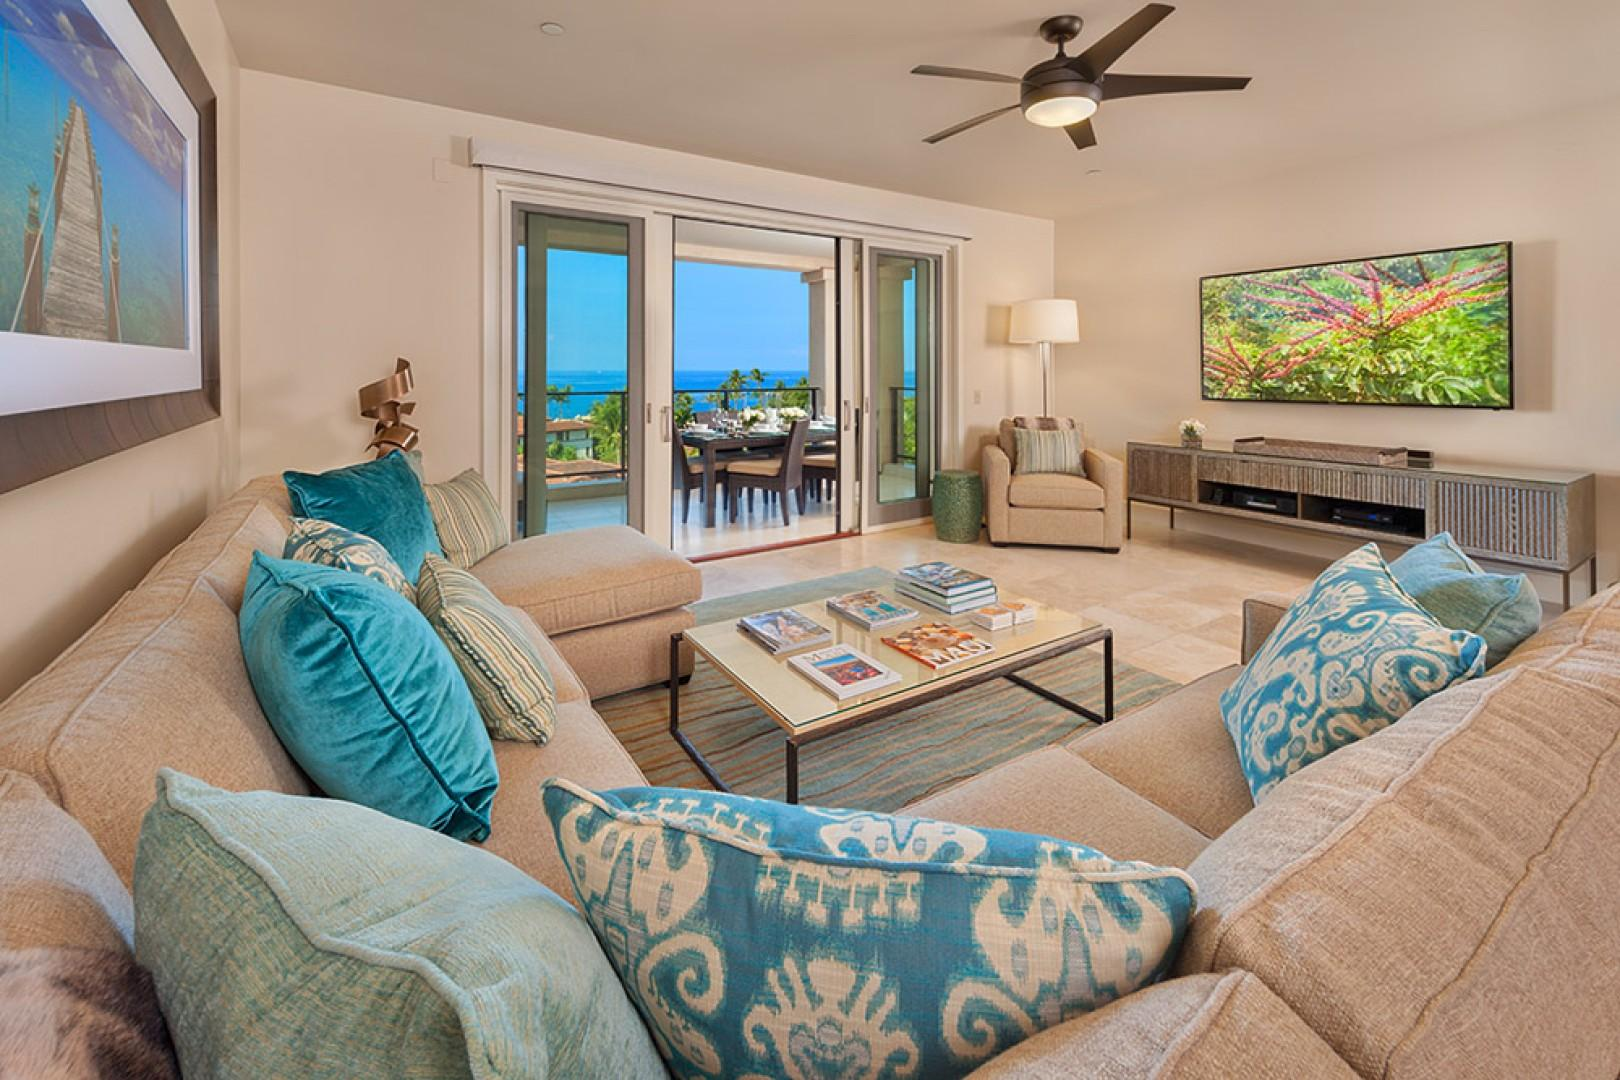 J405 Sea Breeze Suite Expansive Great Room - All New in Late 2013 with Exceptional Furnishings and Entertainment Components